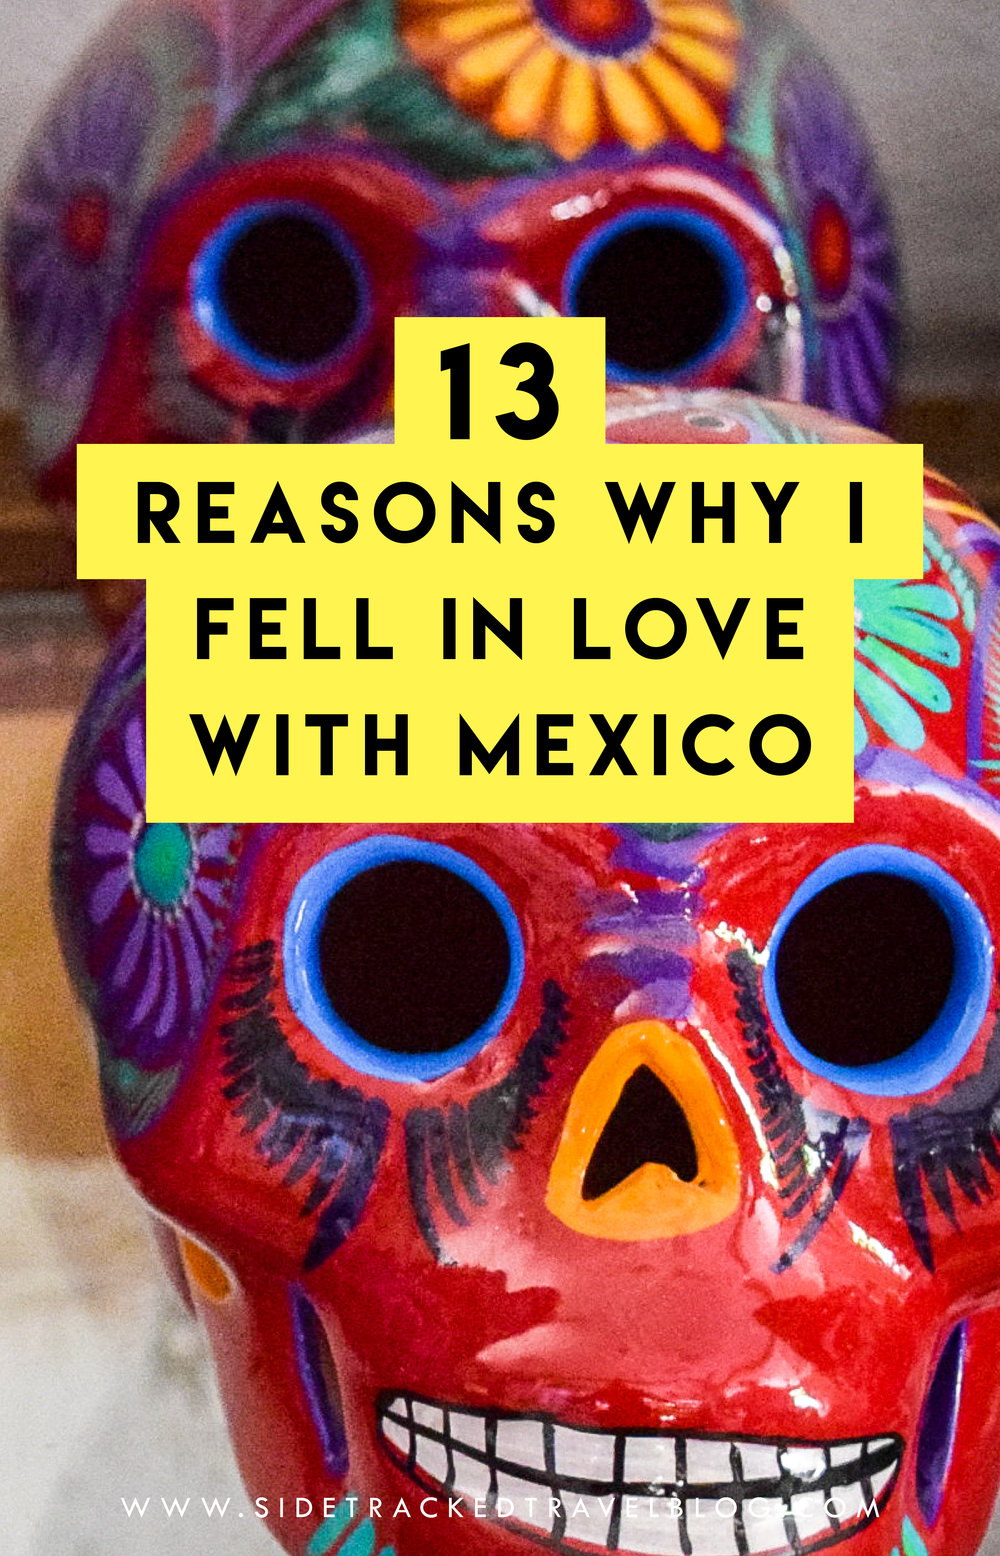 Mexico has so much for travelers to discover - here are 13 reasons why this vibrant country just might steal your heart!